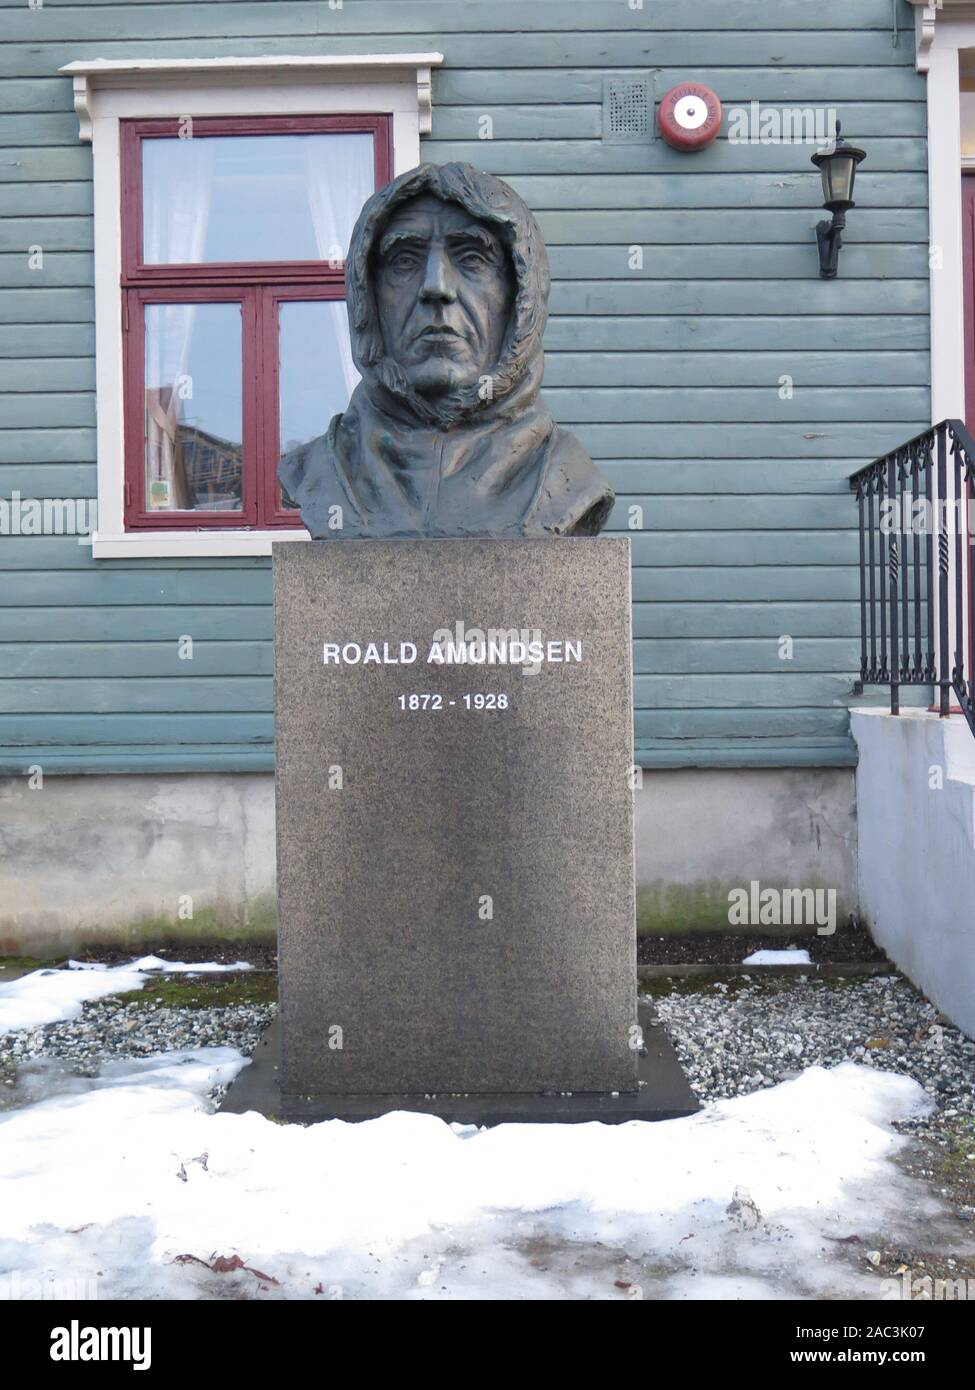 Roald Amundsen, Tromso, Norway Stock Photo